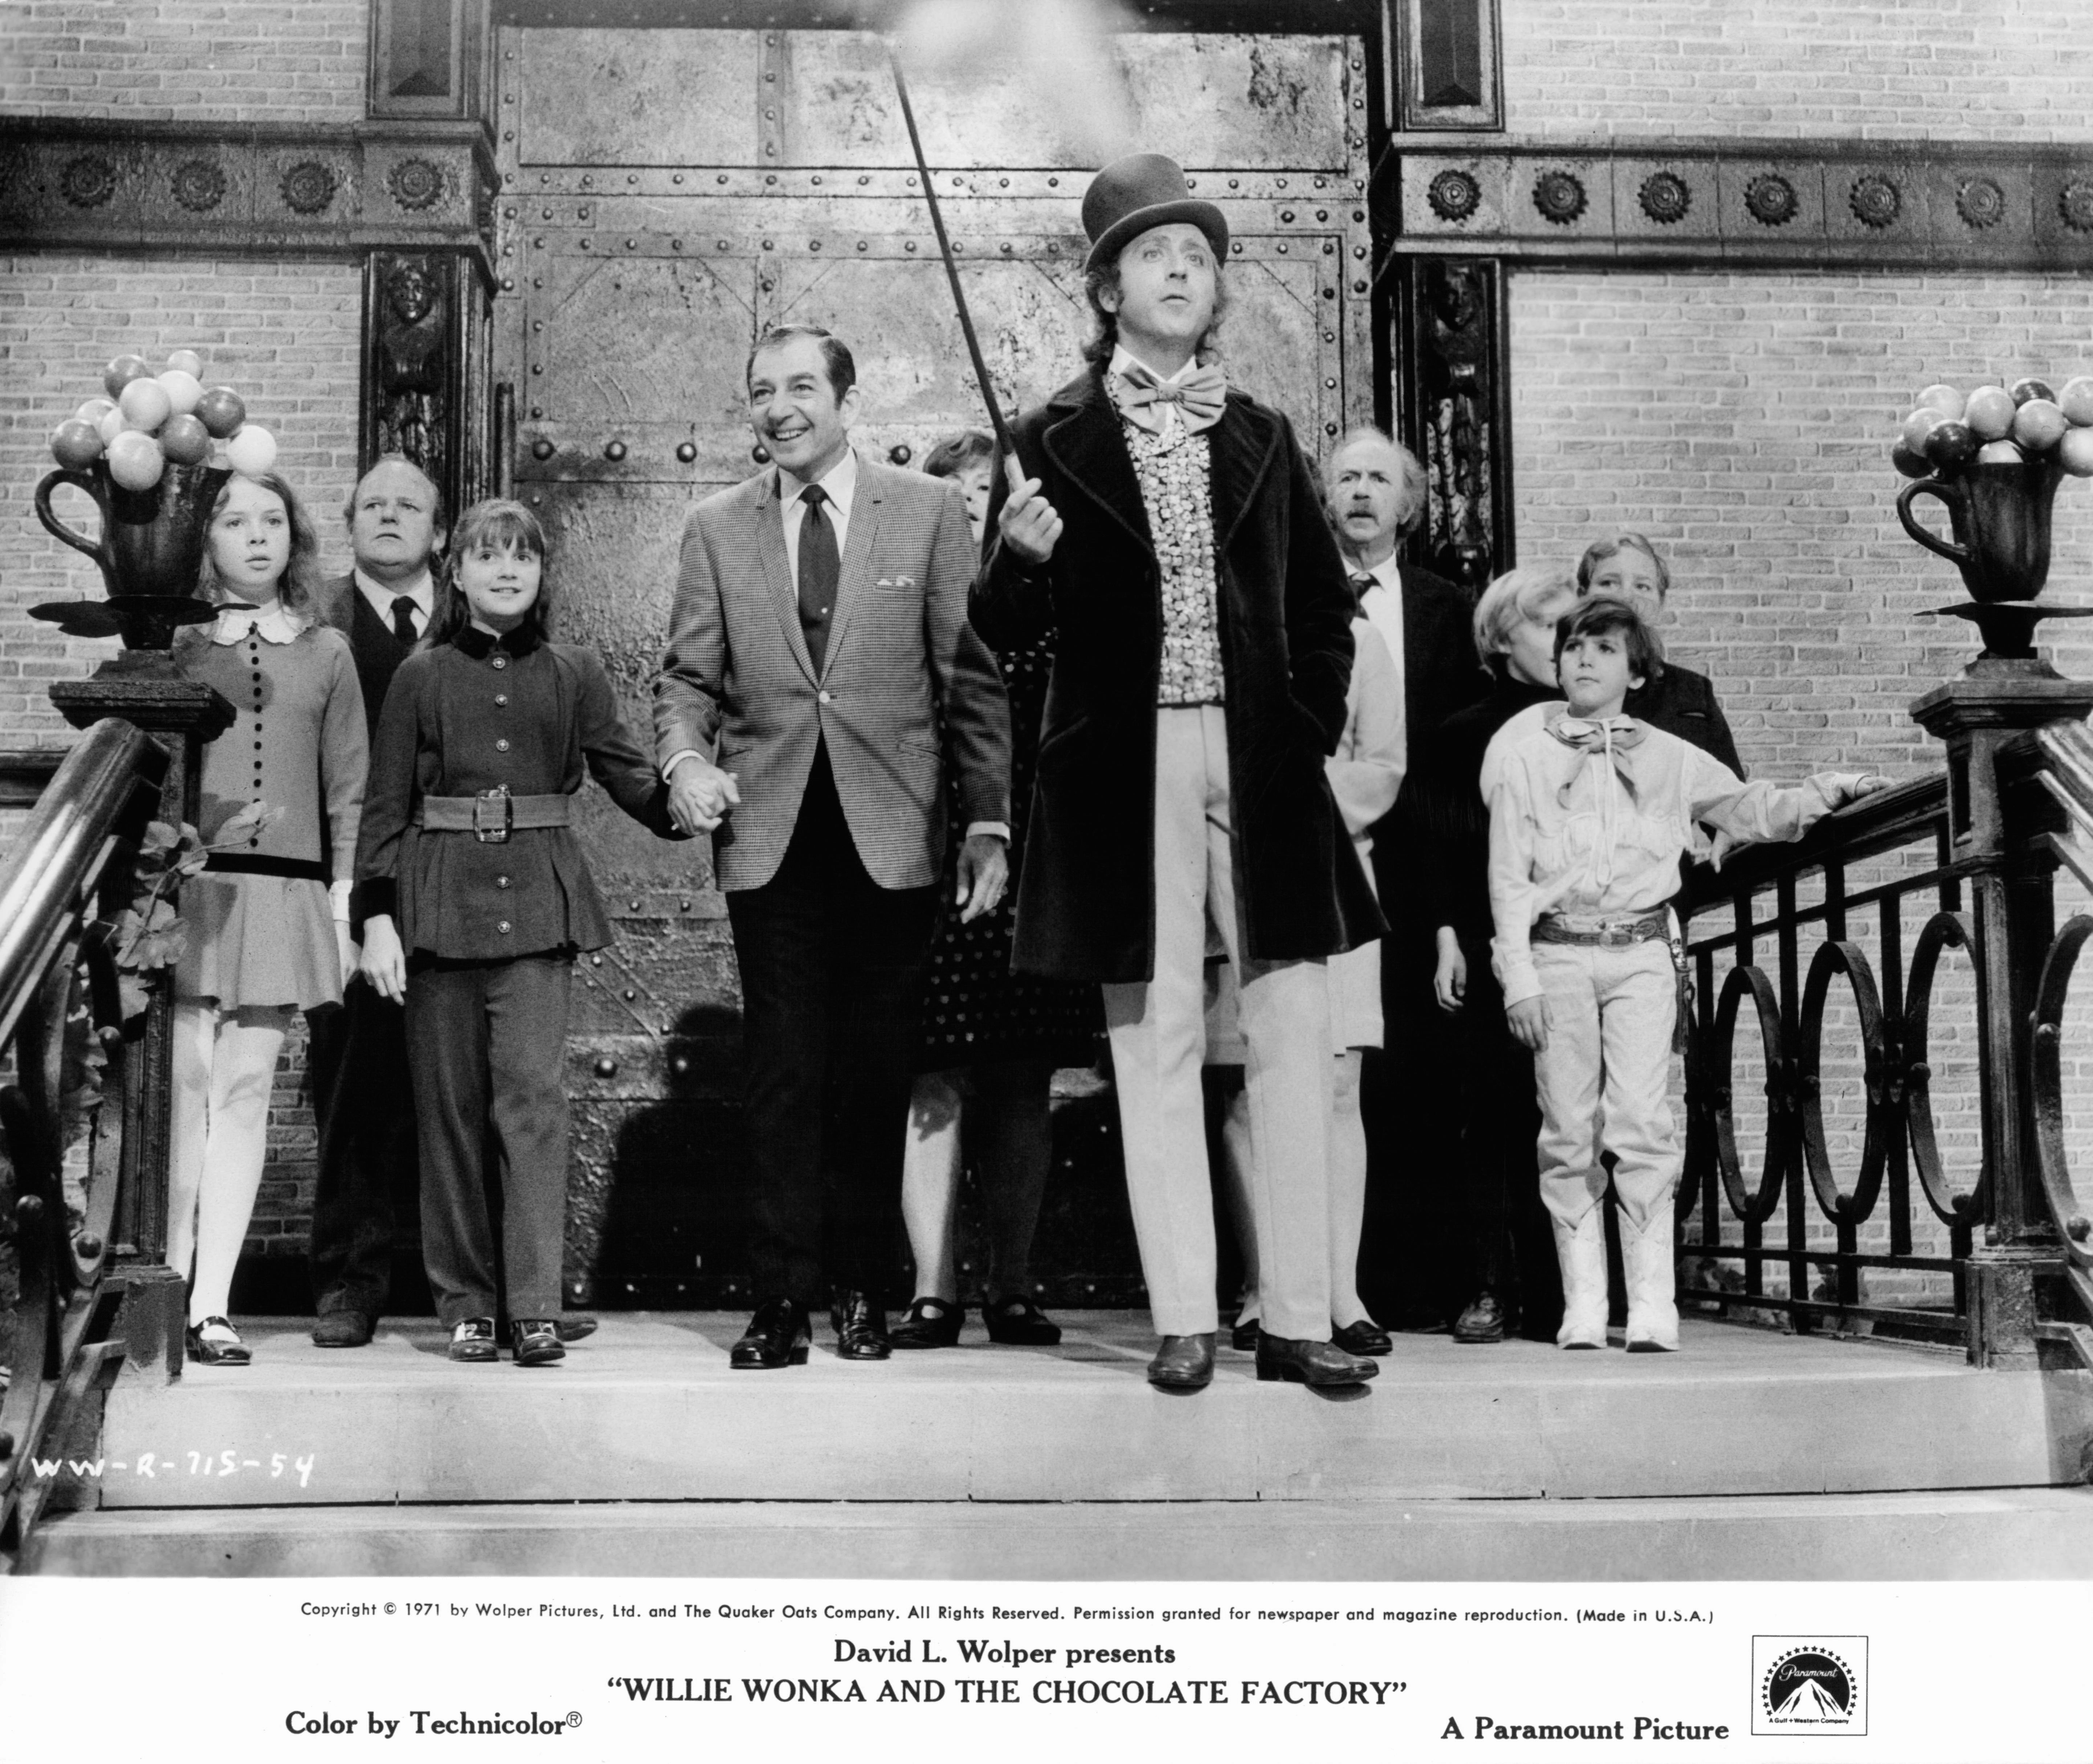 Julie Dawn Cole, Roy Kinnear, Denise Nickerson, Leonard Stone, Ursula Reit, Gene Wilder, Jack Albertson, Peter Ostrum, Paris Themmen, and Michael Bollner at top of staircase in a scene from the film 'Willy Wonka & the Chocolate Factory', 1971. (Photo by Paramount/Getty Images)